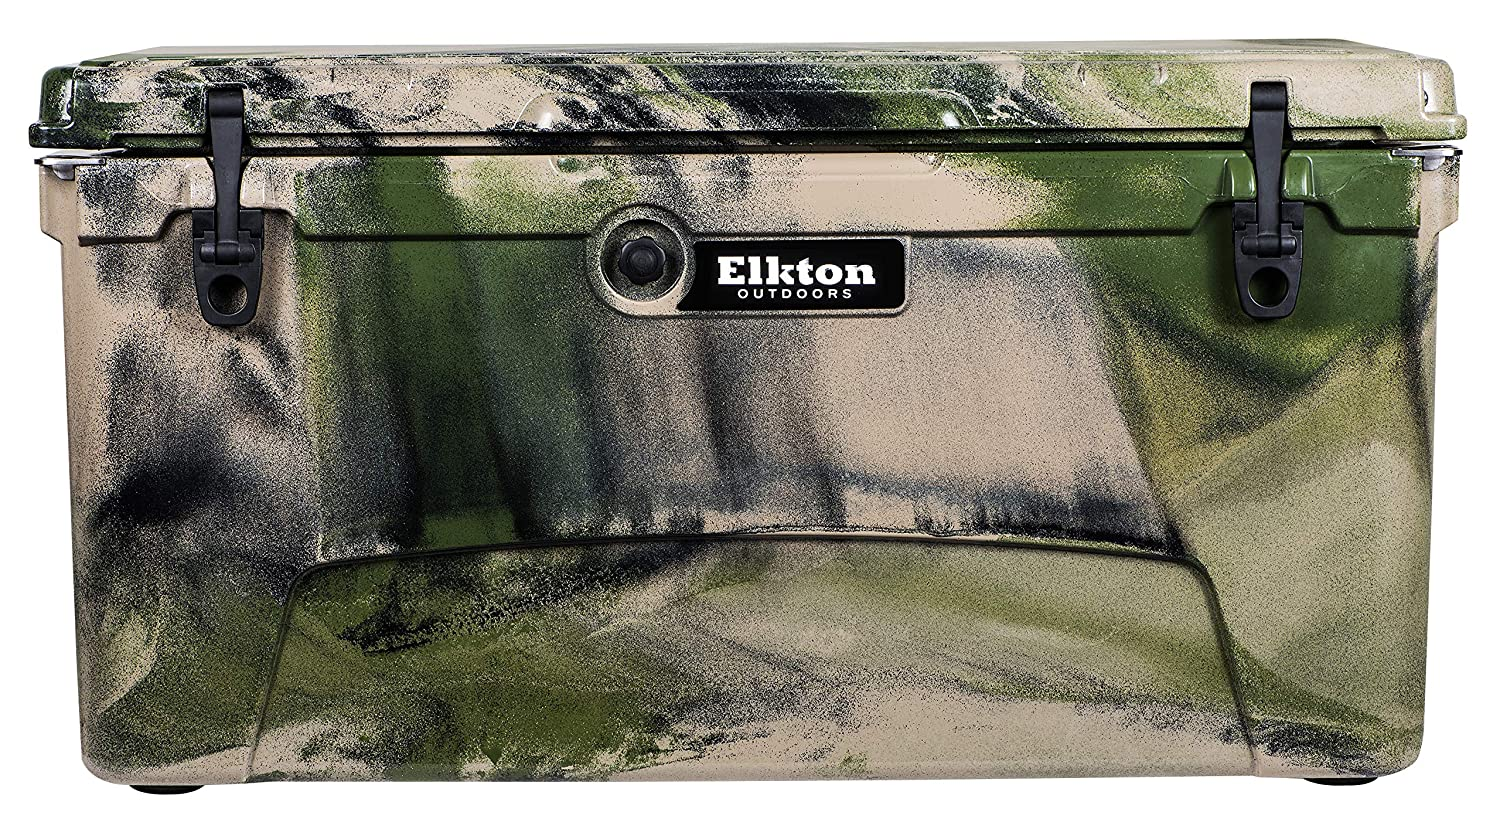 Elkton Outdoors Ice Chest. Heavy Duty, High Performance Roto-Molded Commercial Grade Insulated Cooler, 110-Quart